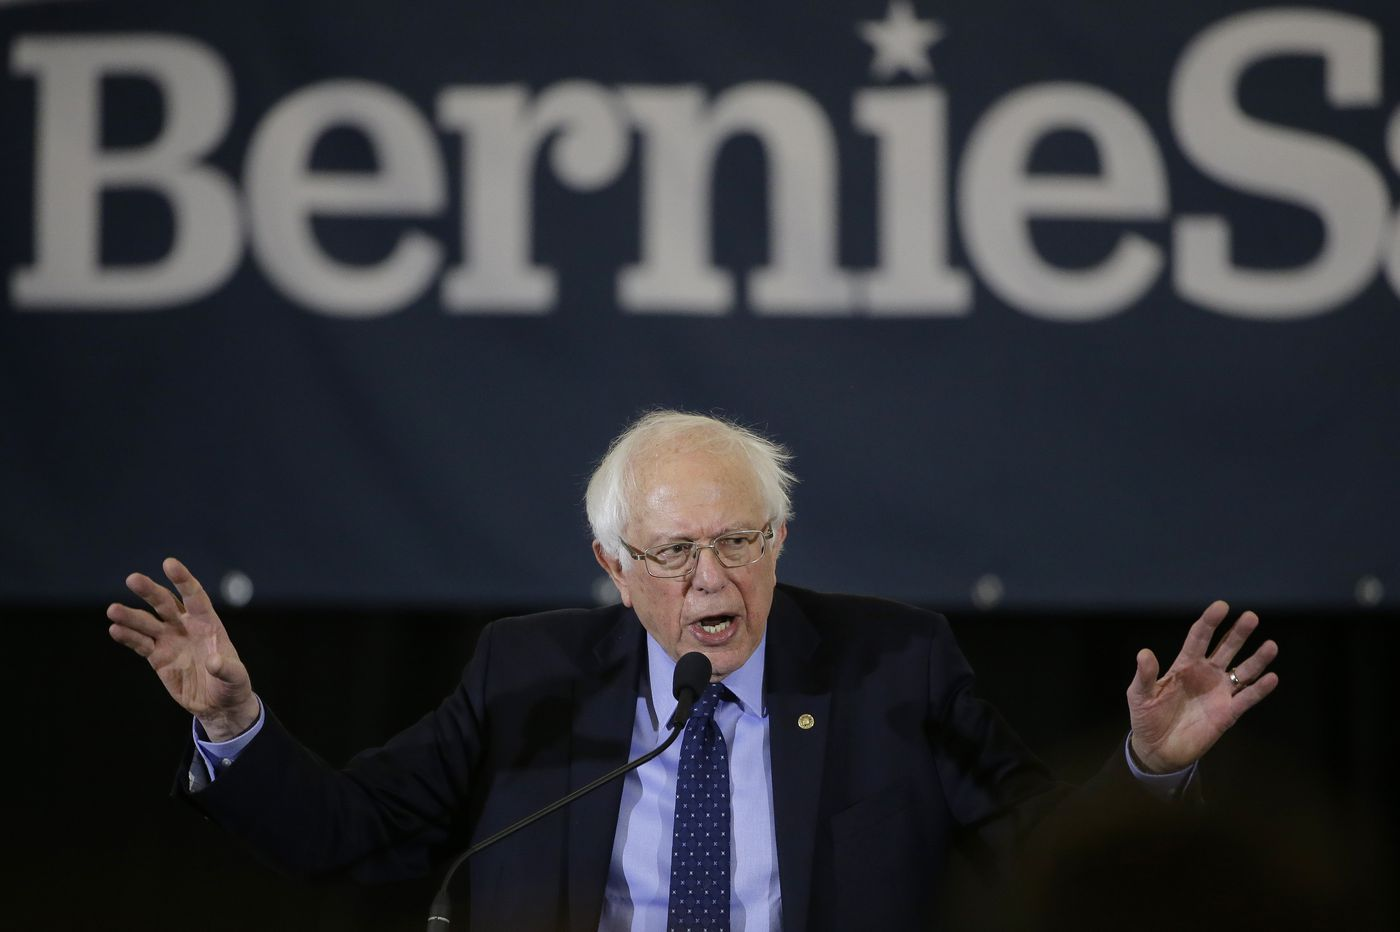 Sanders Campaign Launches 'Emergency' Fundraiser to Combat NYT Report